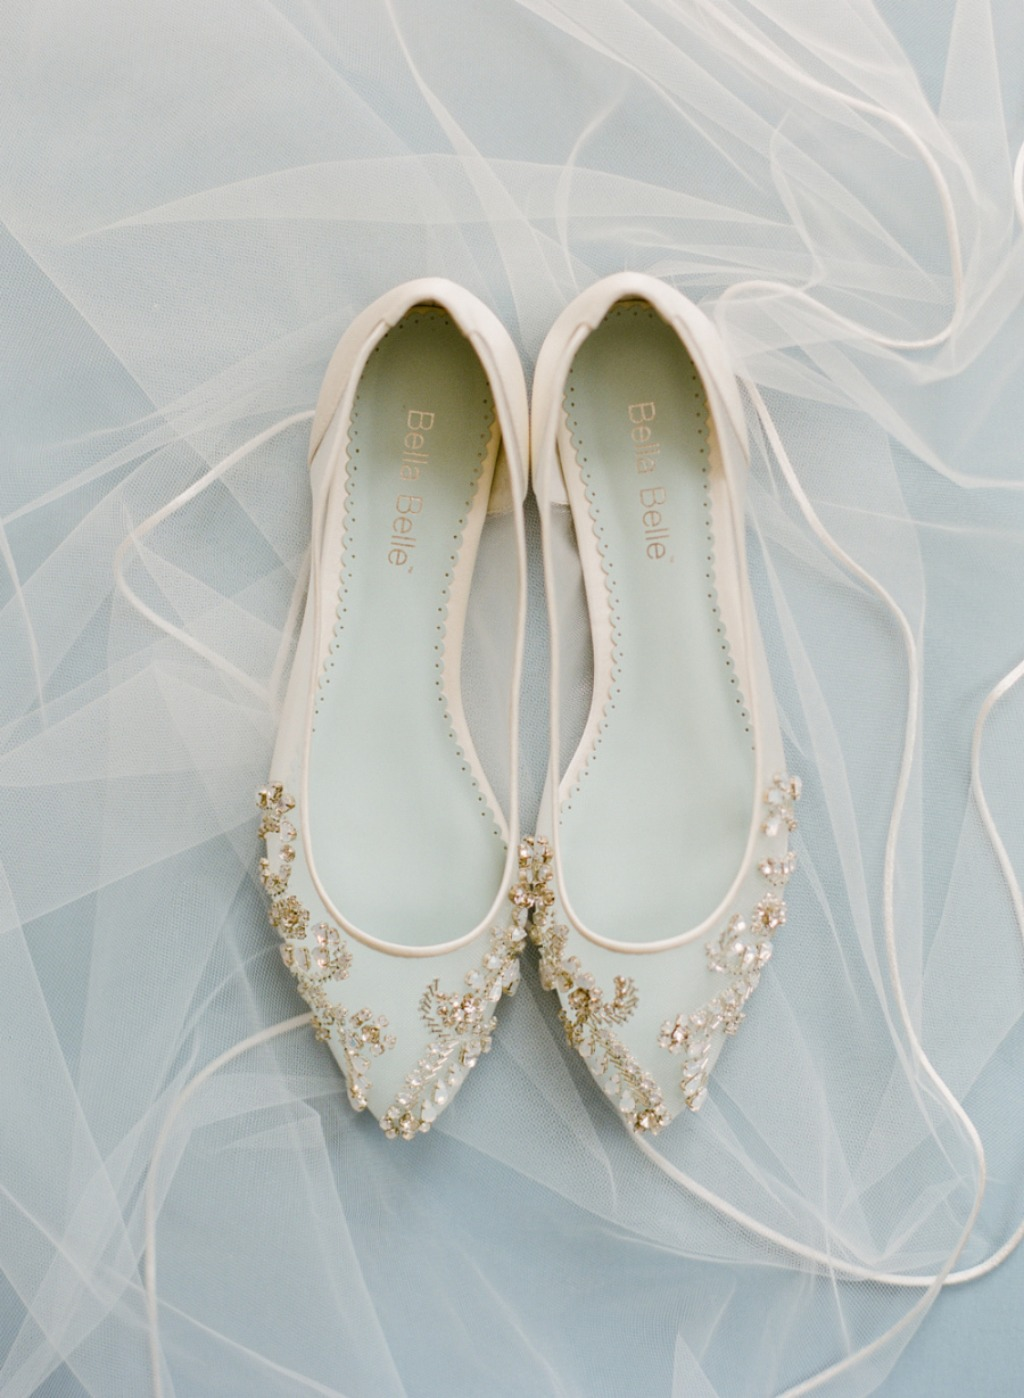 The perfect wedding flat to twinkle the night away on the dance floor. See more at @bellabelleshoes